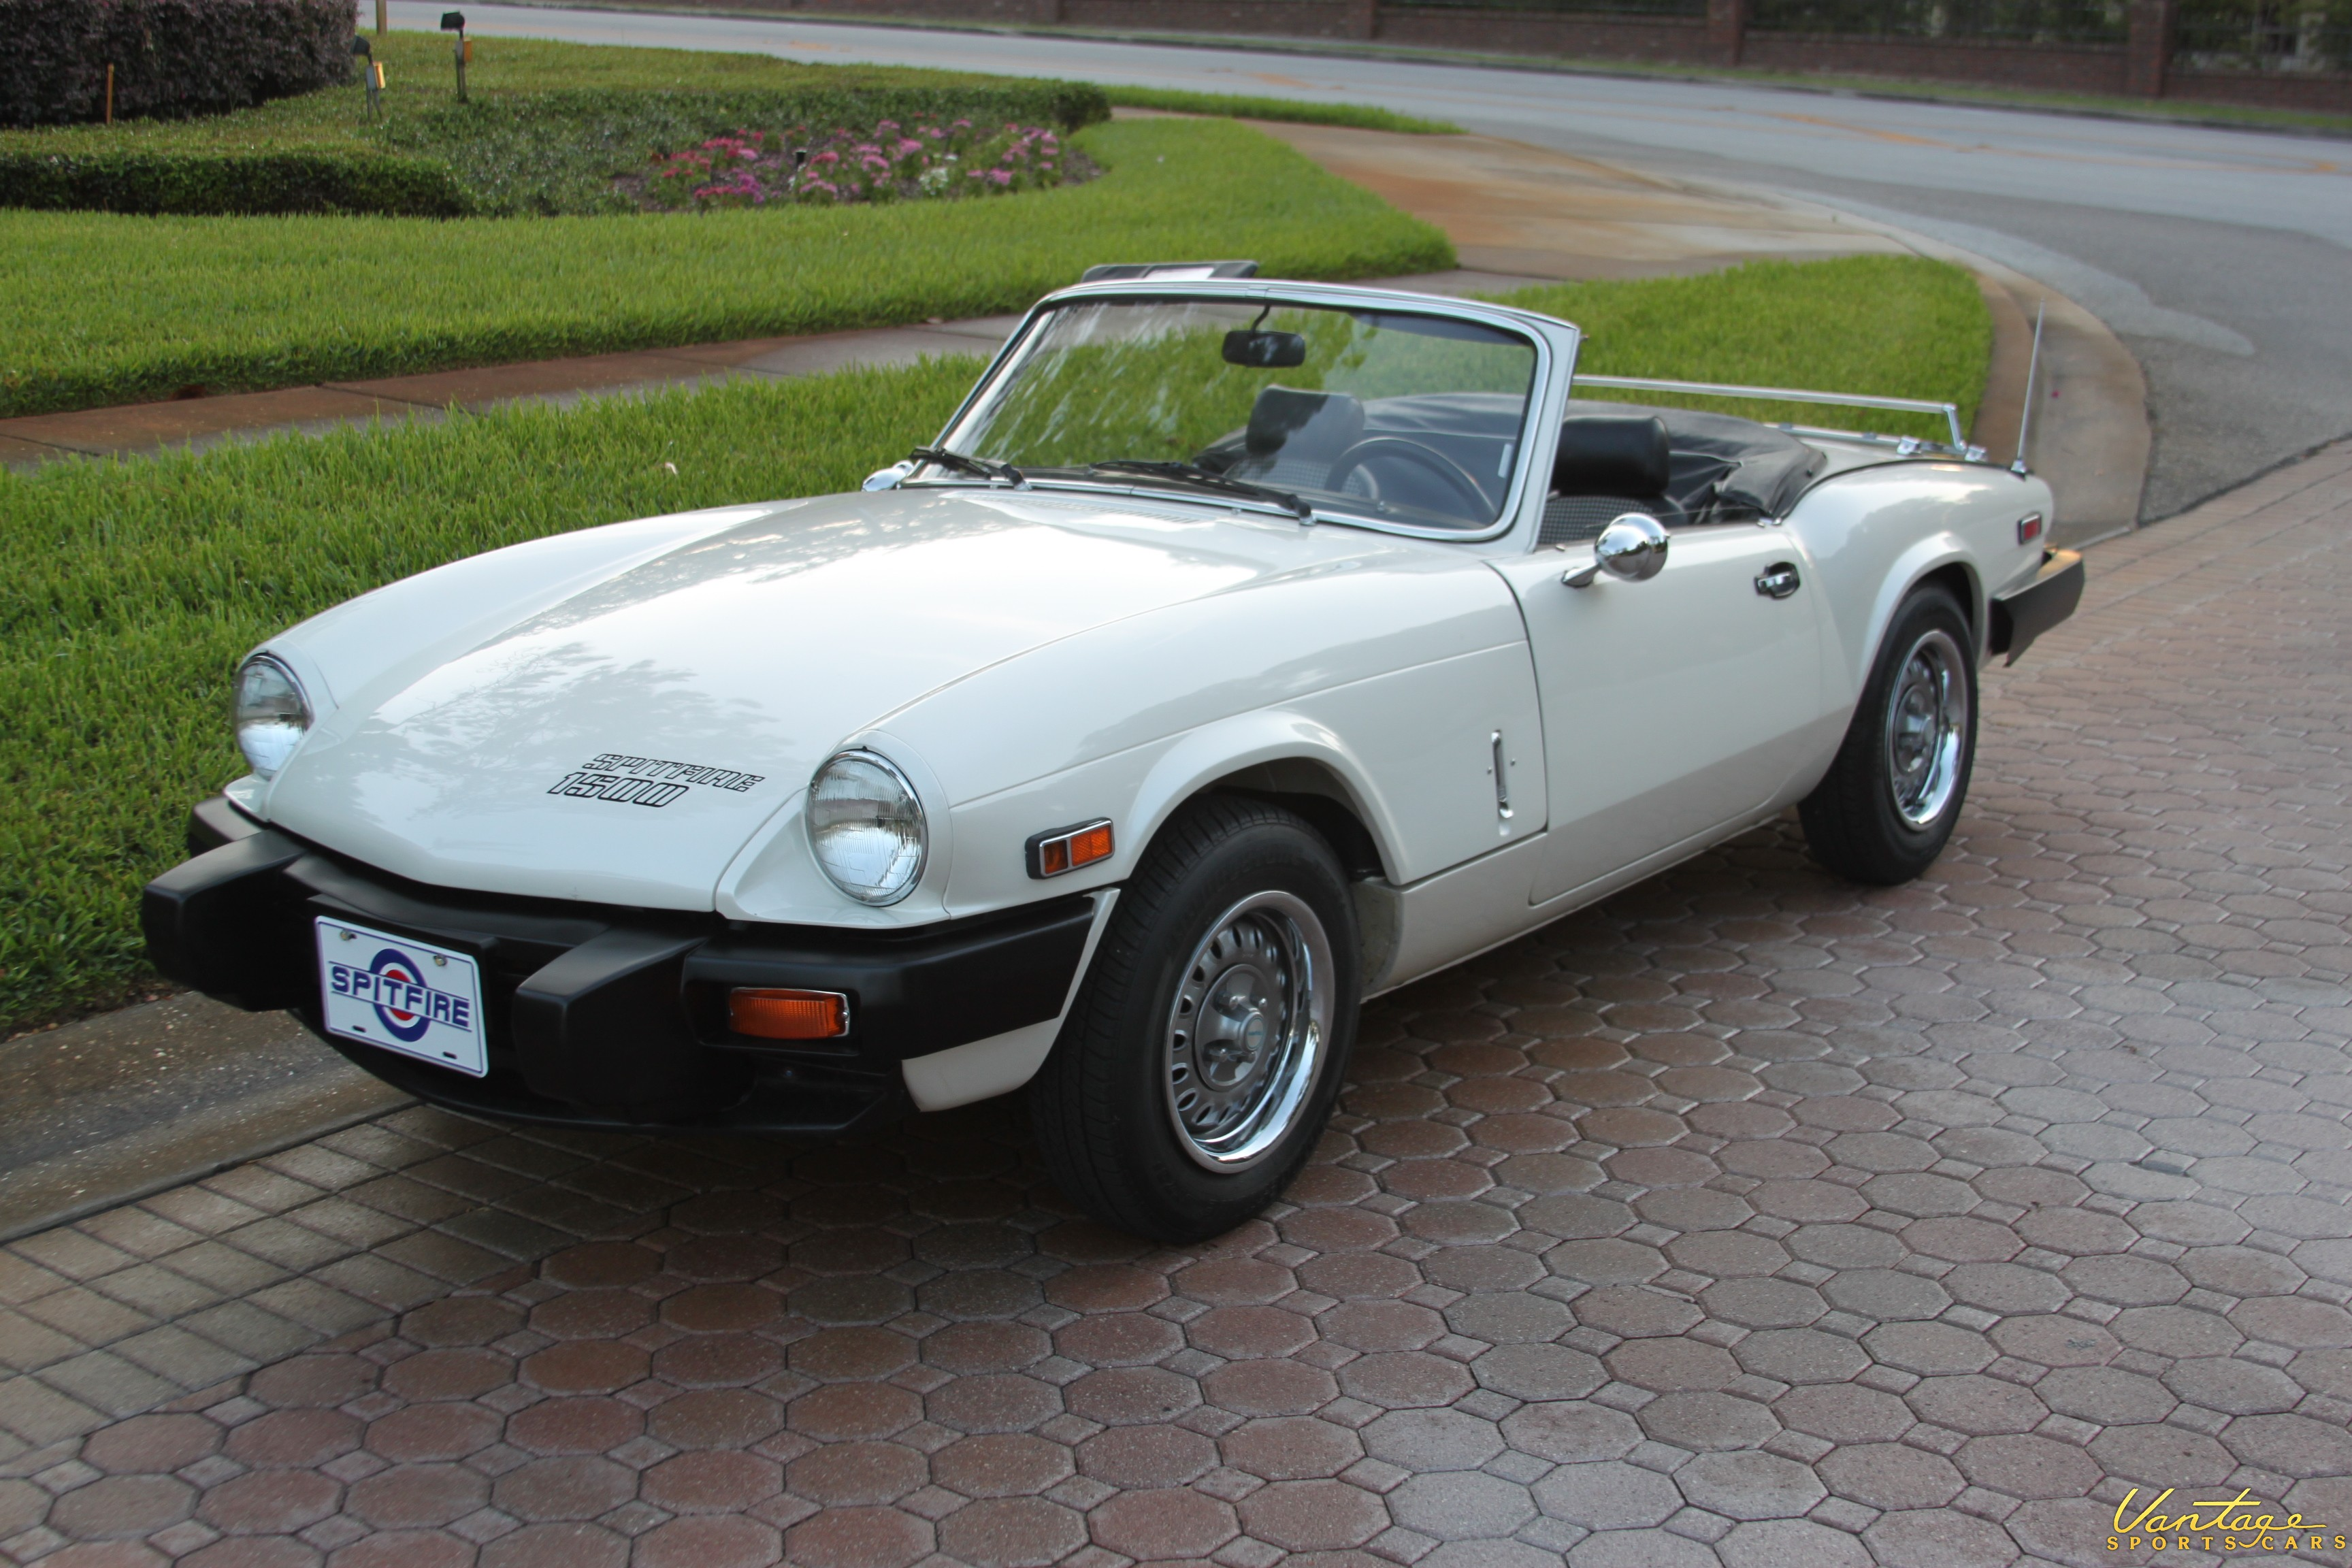 1980 triumph spitfire 1500 with factory overdrive sold vantage sports cars. Black Bedroom Furniture Sets. Home Design Ideas